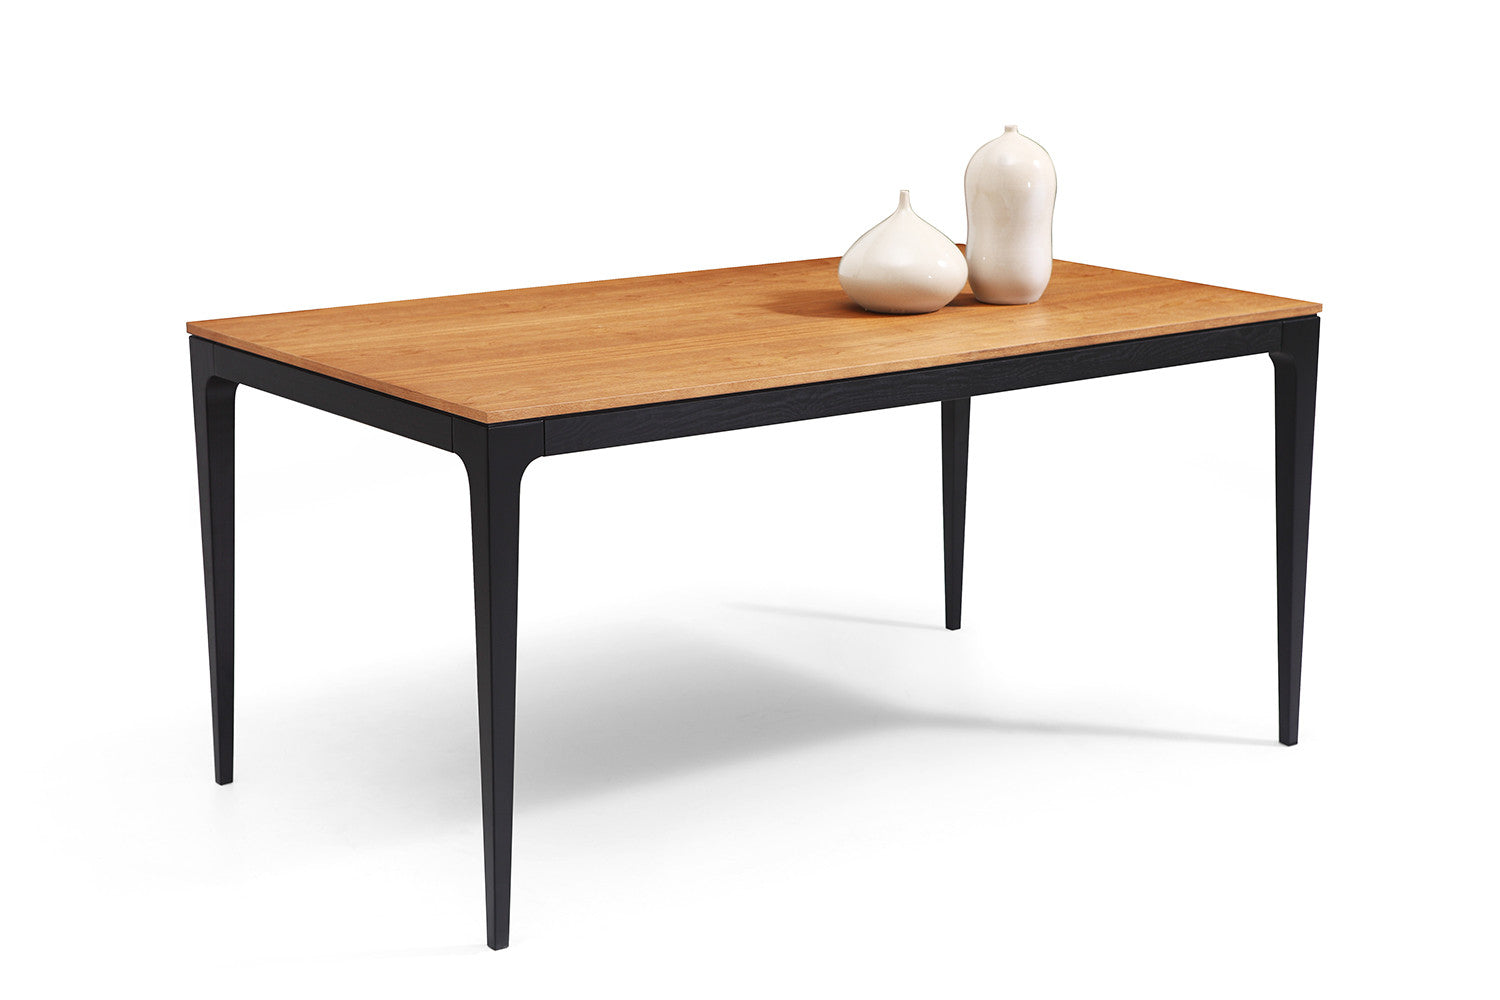 Table Salle Manger Bois Massif Design Of Table A Manger Design Bois